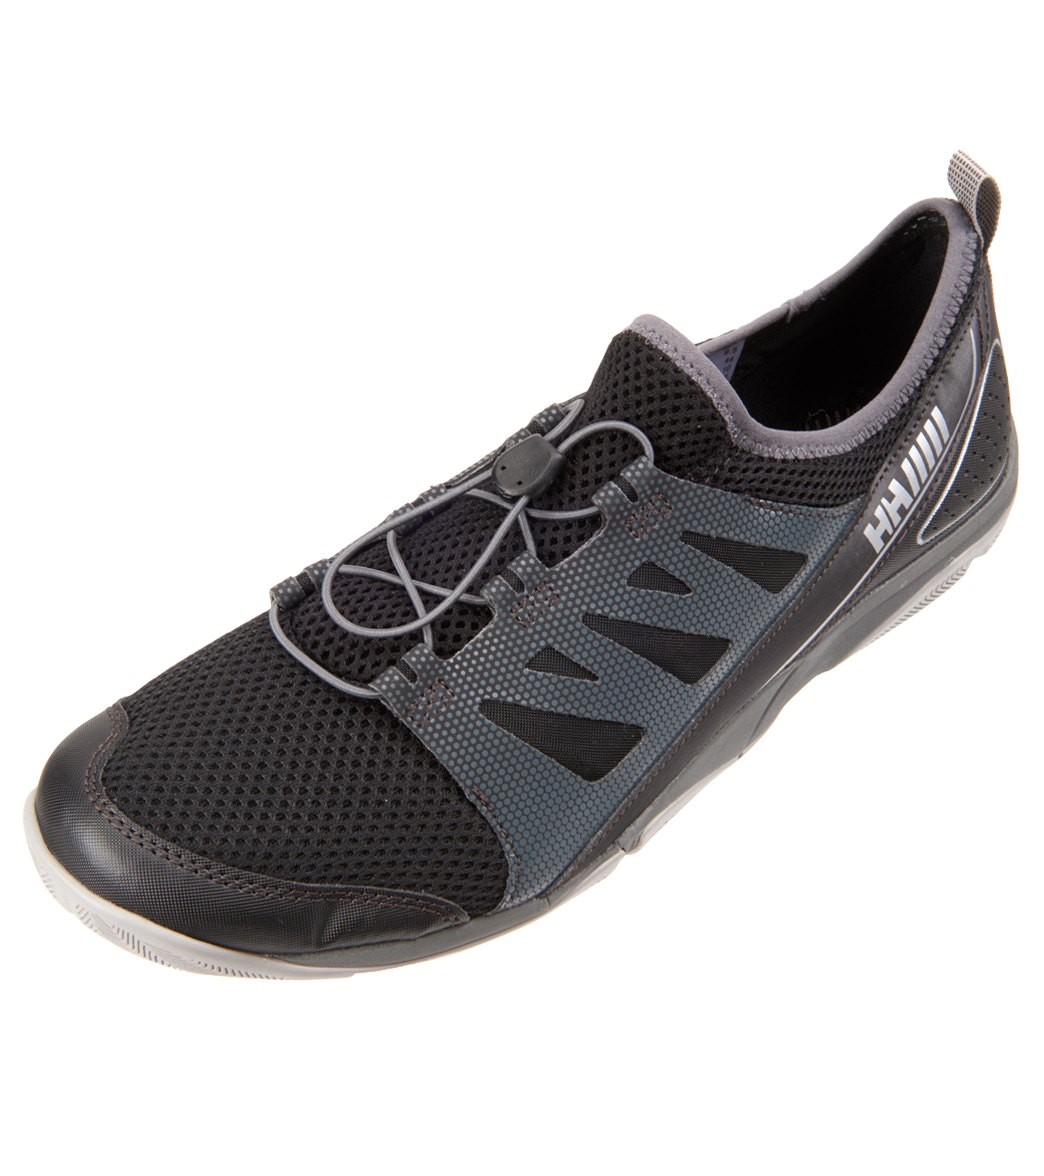 6f77dd494057 Helly Hansen Men s Aquapace 2 Water Shoes at SwimOutlet.com - Free Shipping